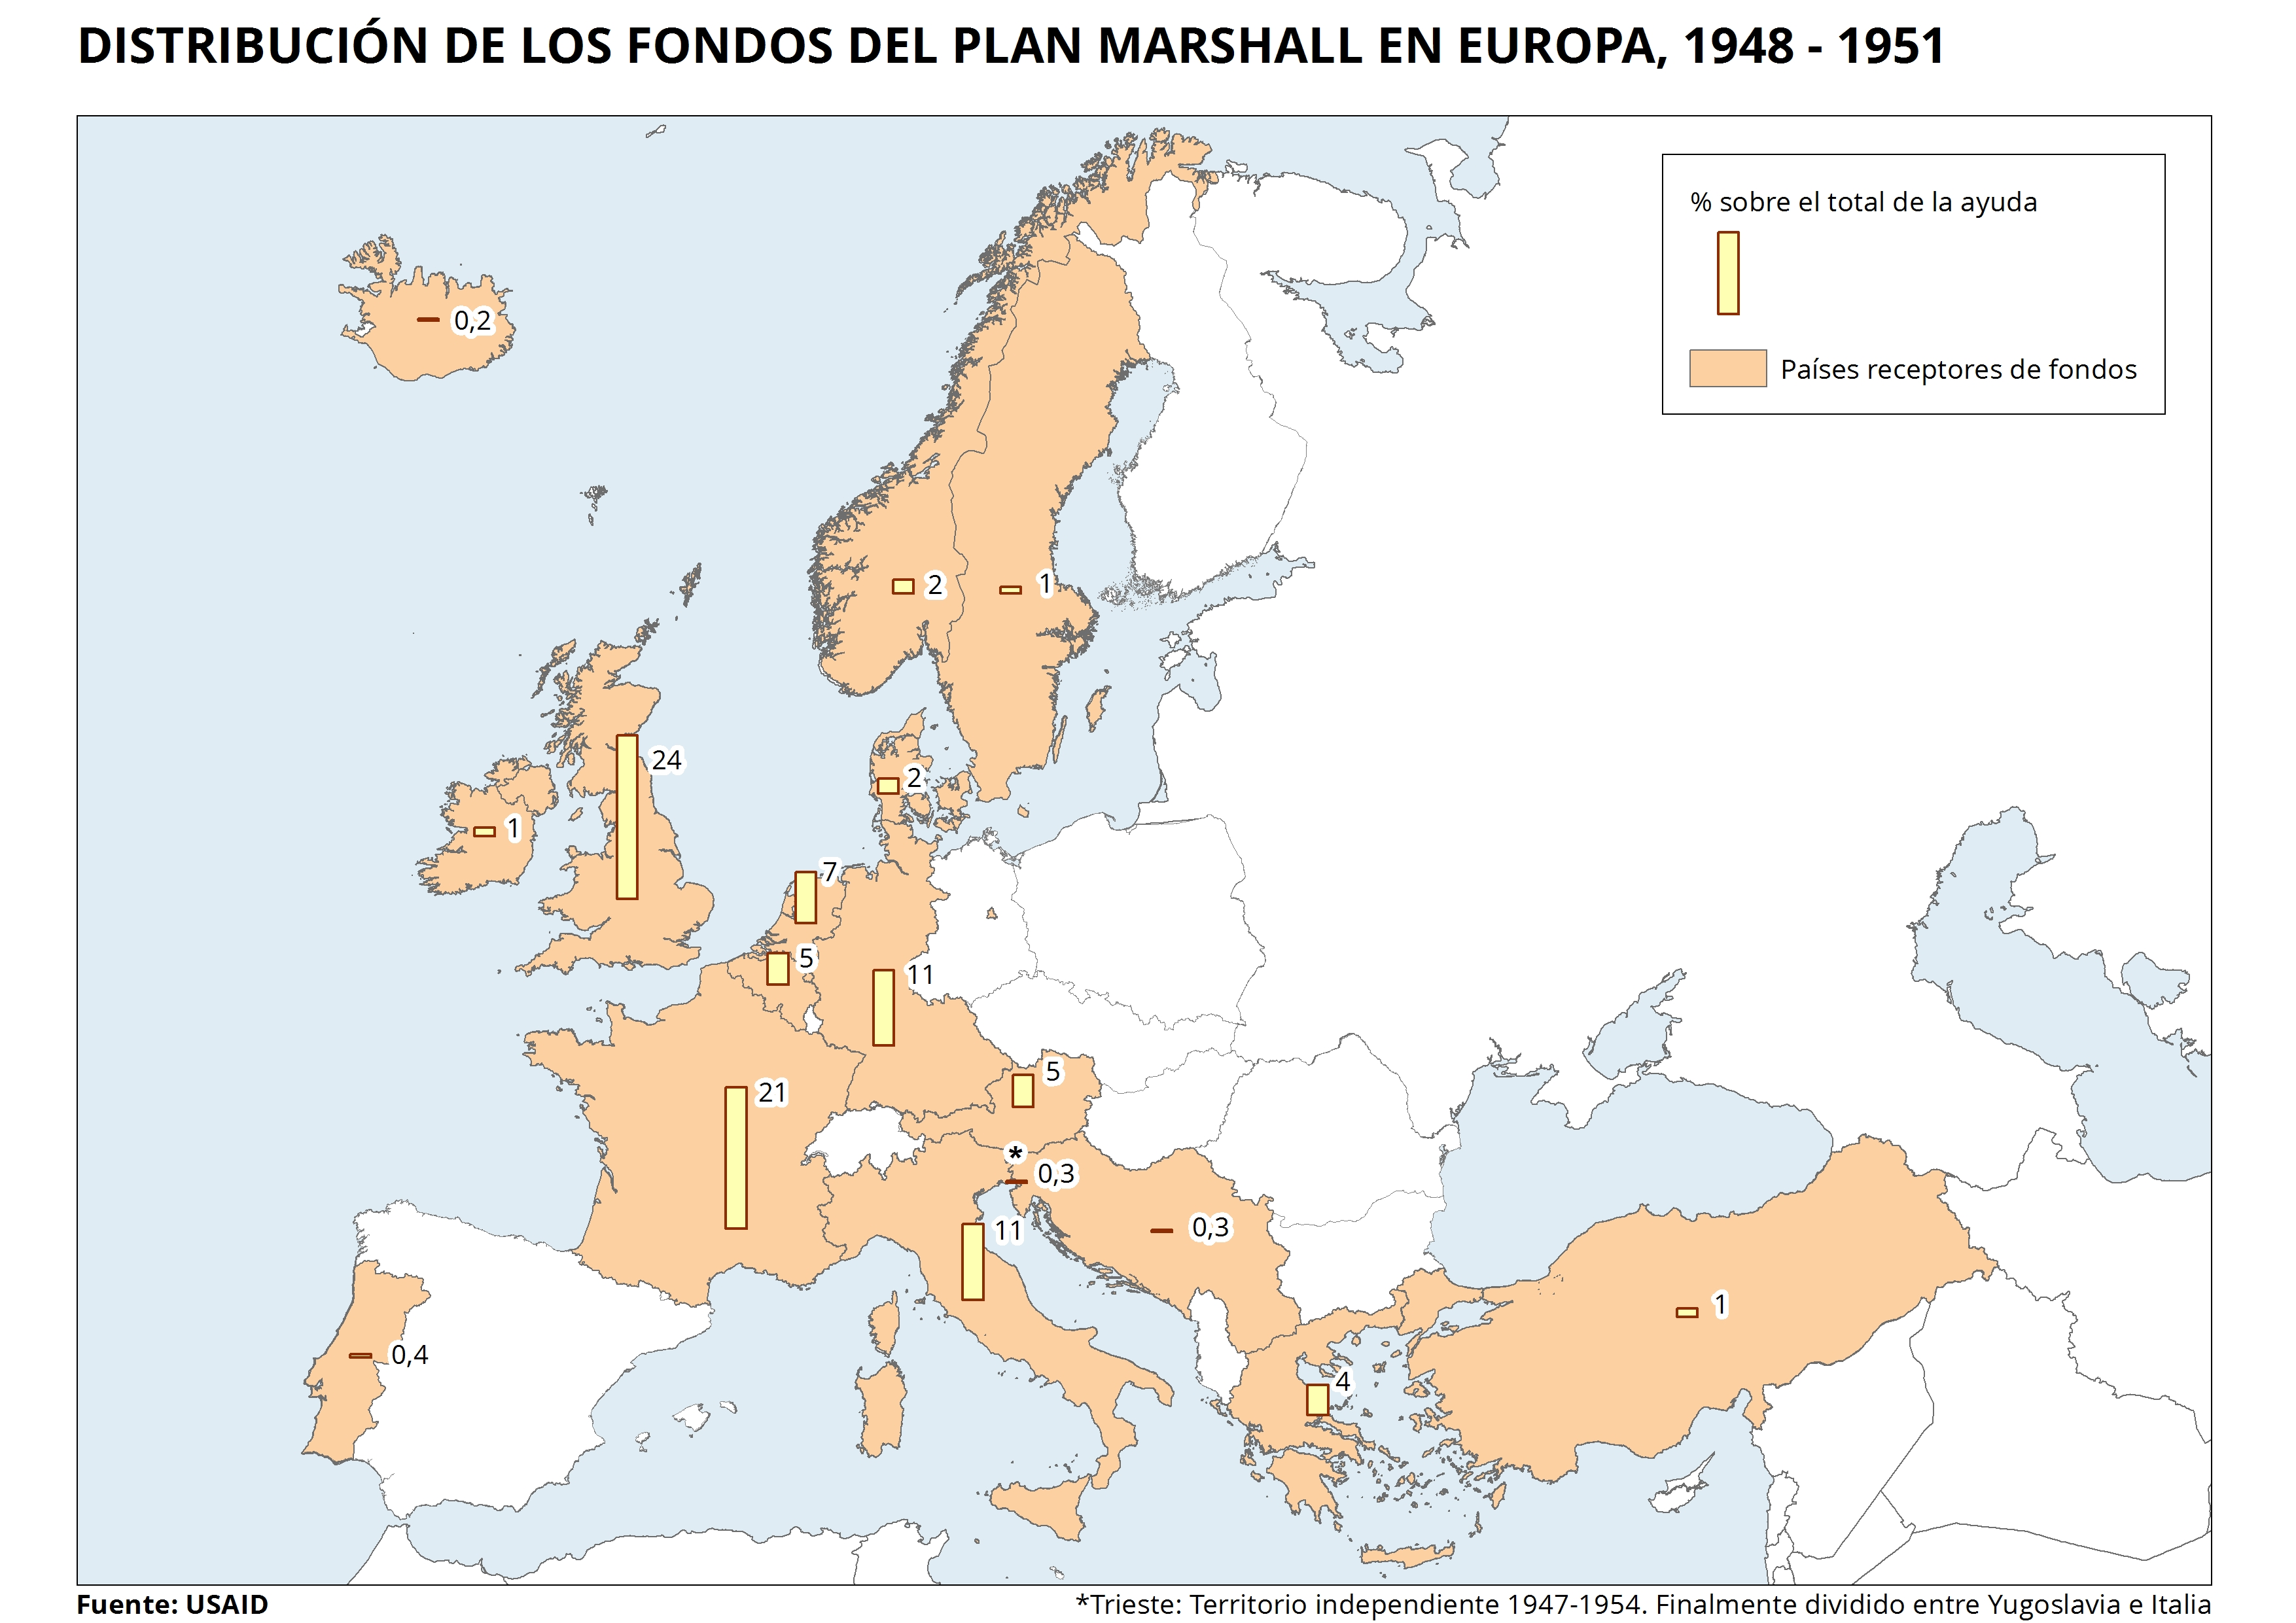 marshal plan funds distribution in europe from 1948 to 1951